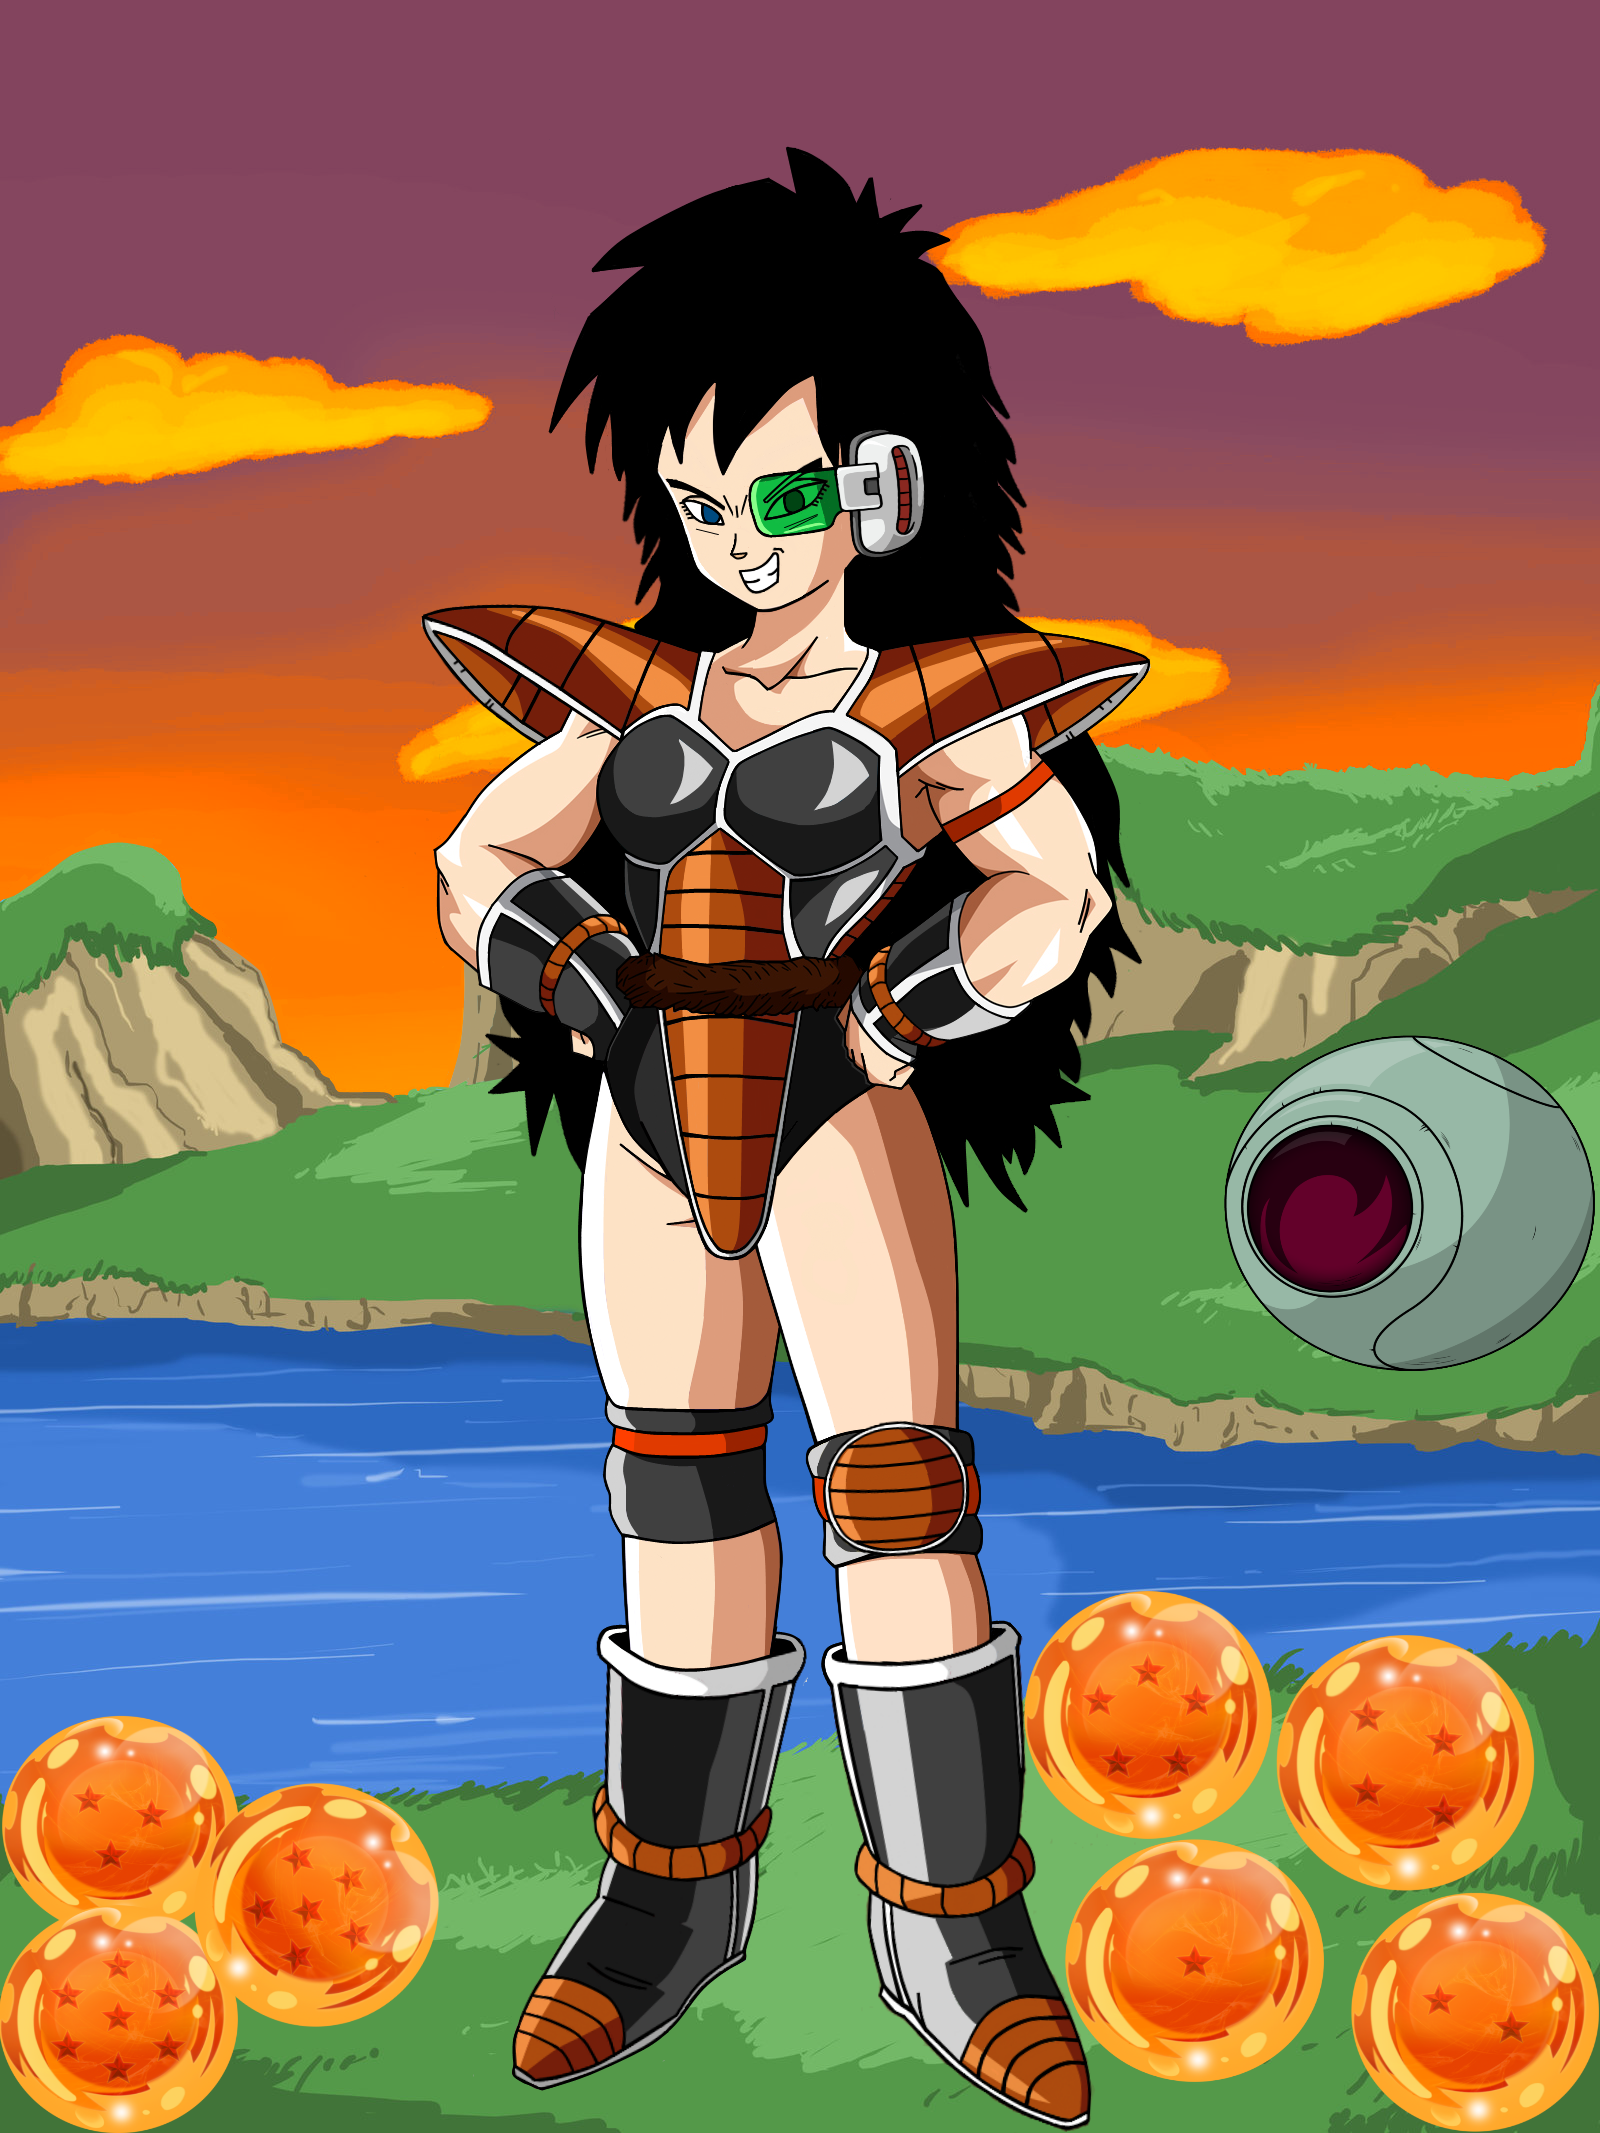 Female Saiyan With Raditz Armor W Backround Anime Dragon Ball Super Fantasy Fighter Concept Art Characters